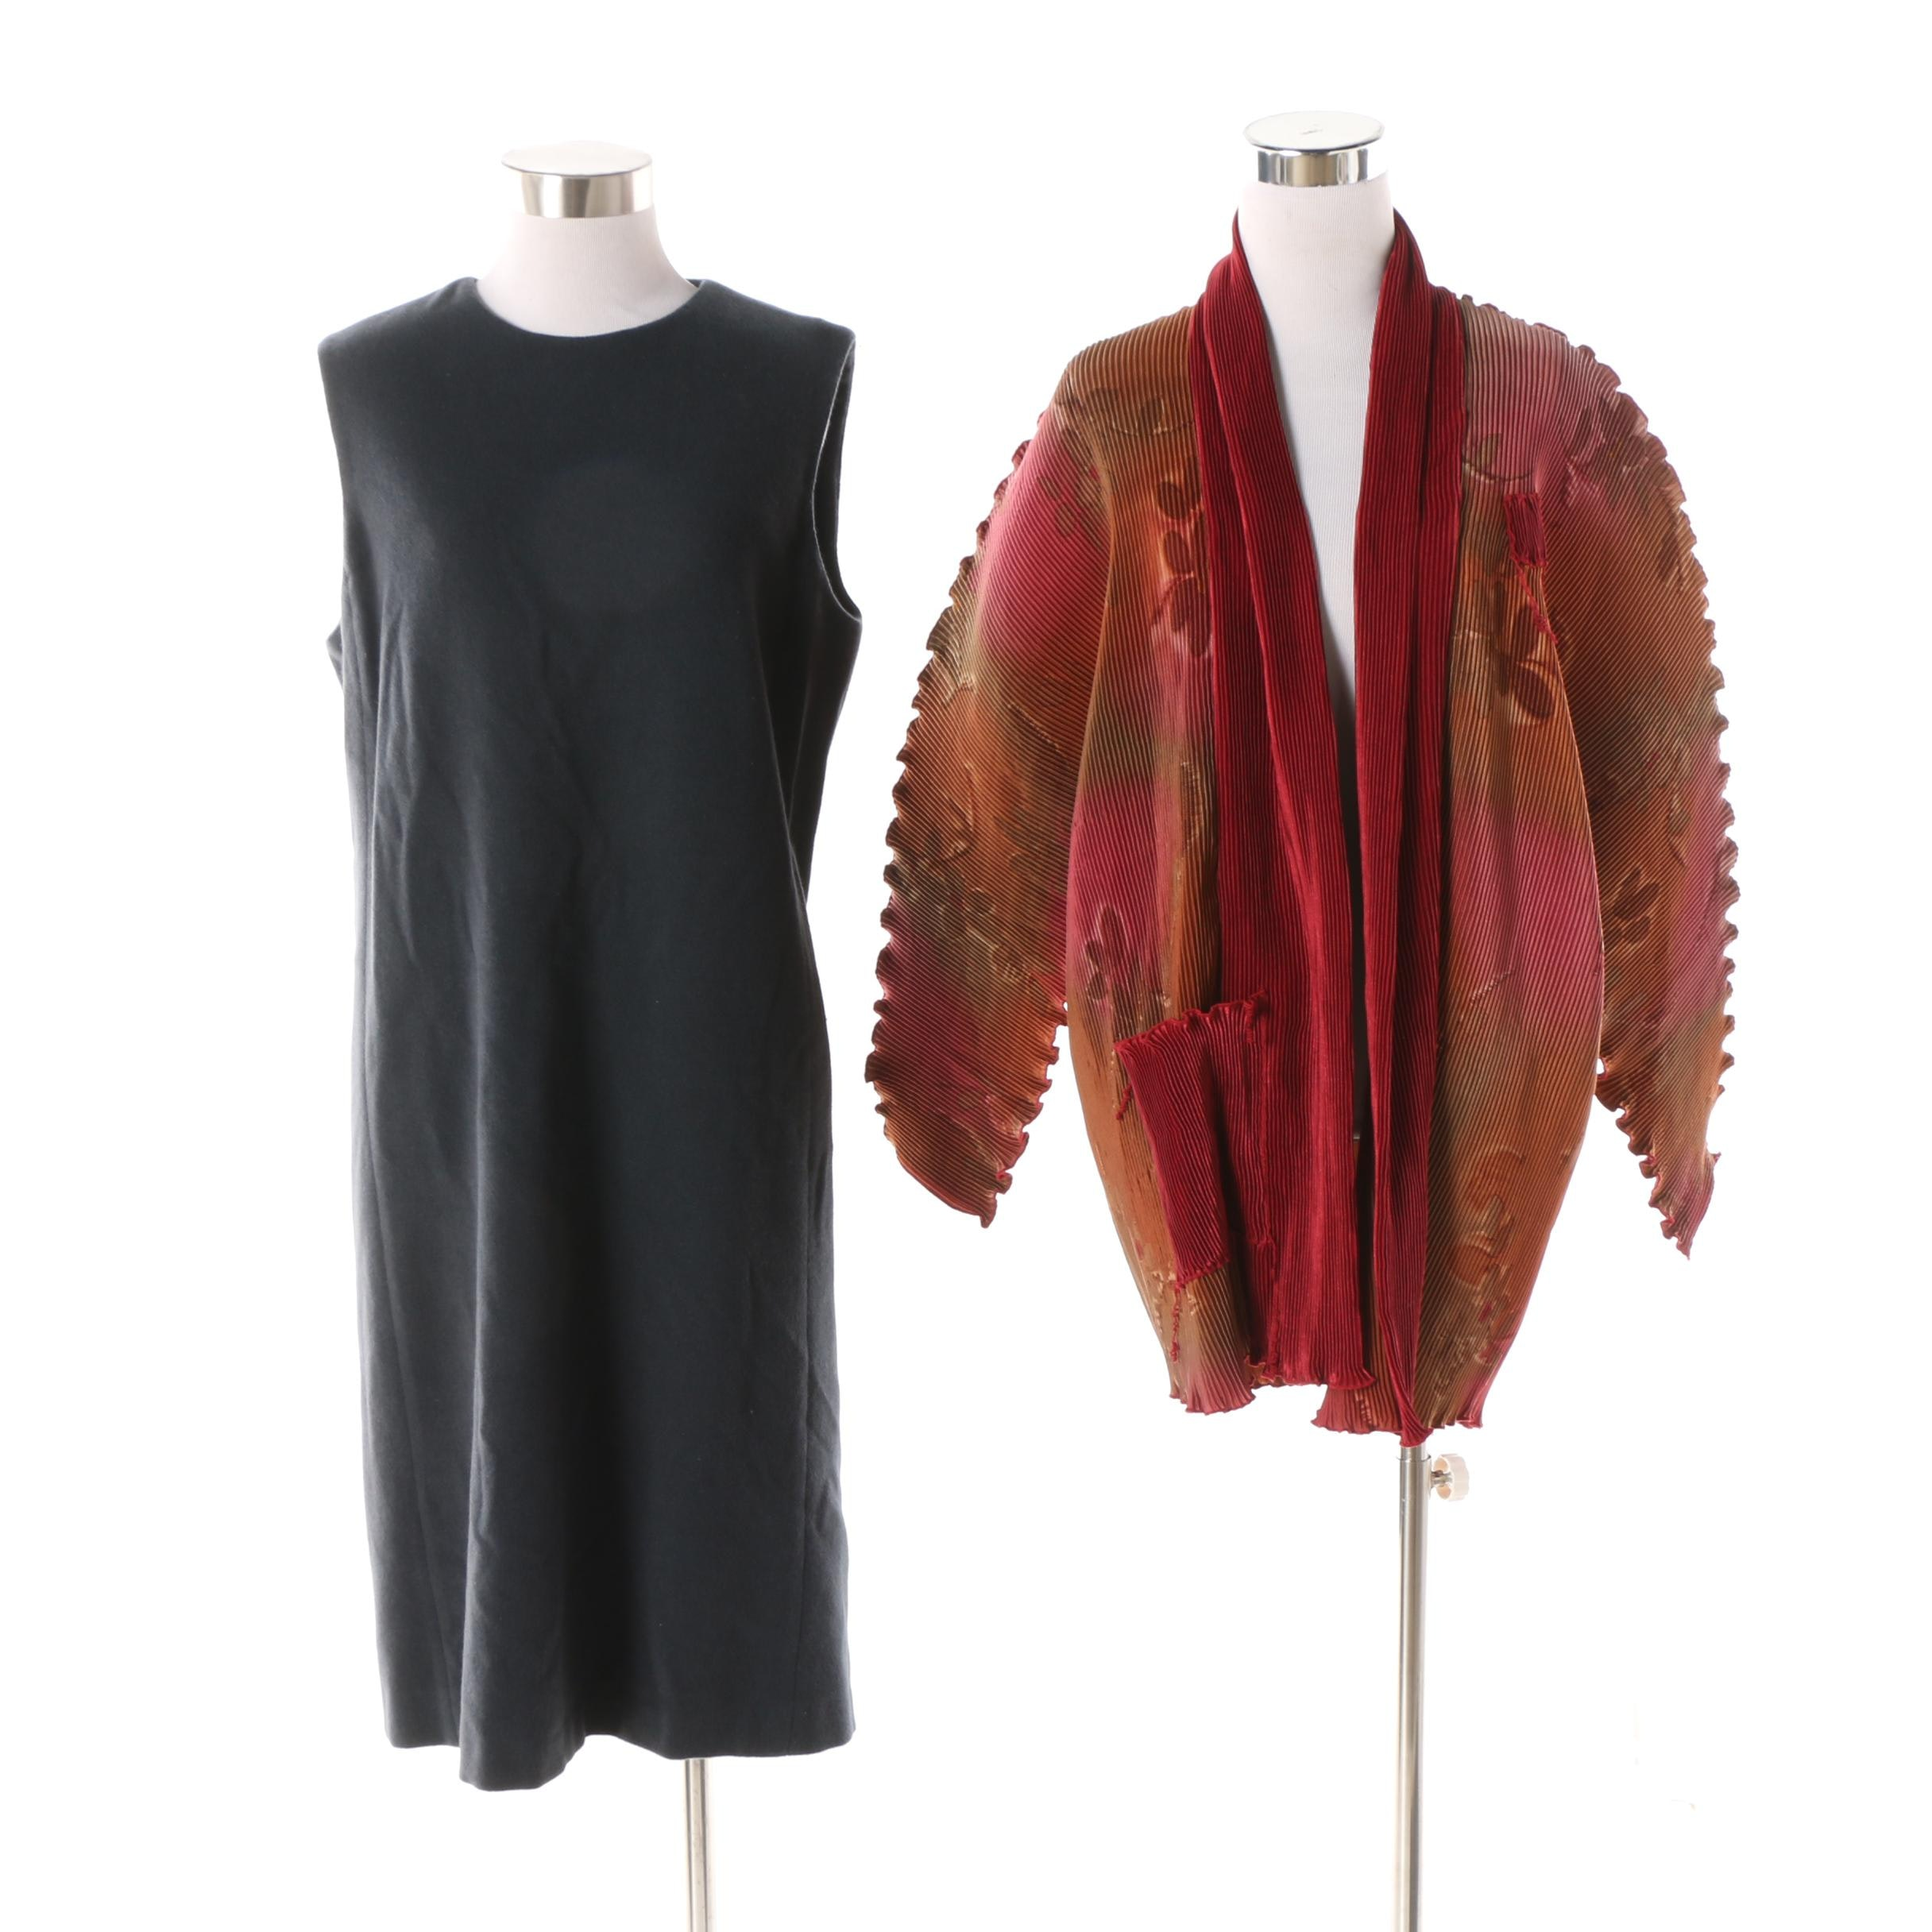 Women's TSE Cashmere Shift Dress and Ellen Hauptli Pleated Cardigan